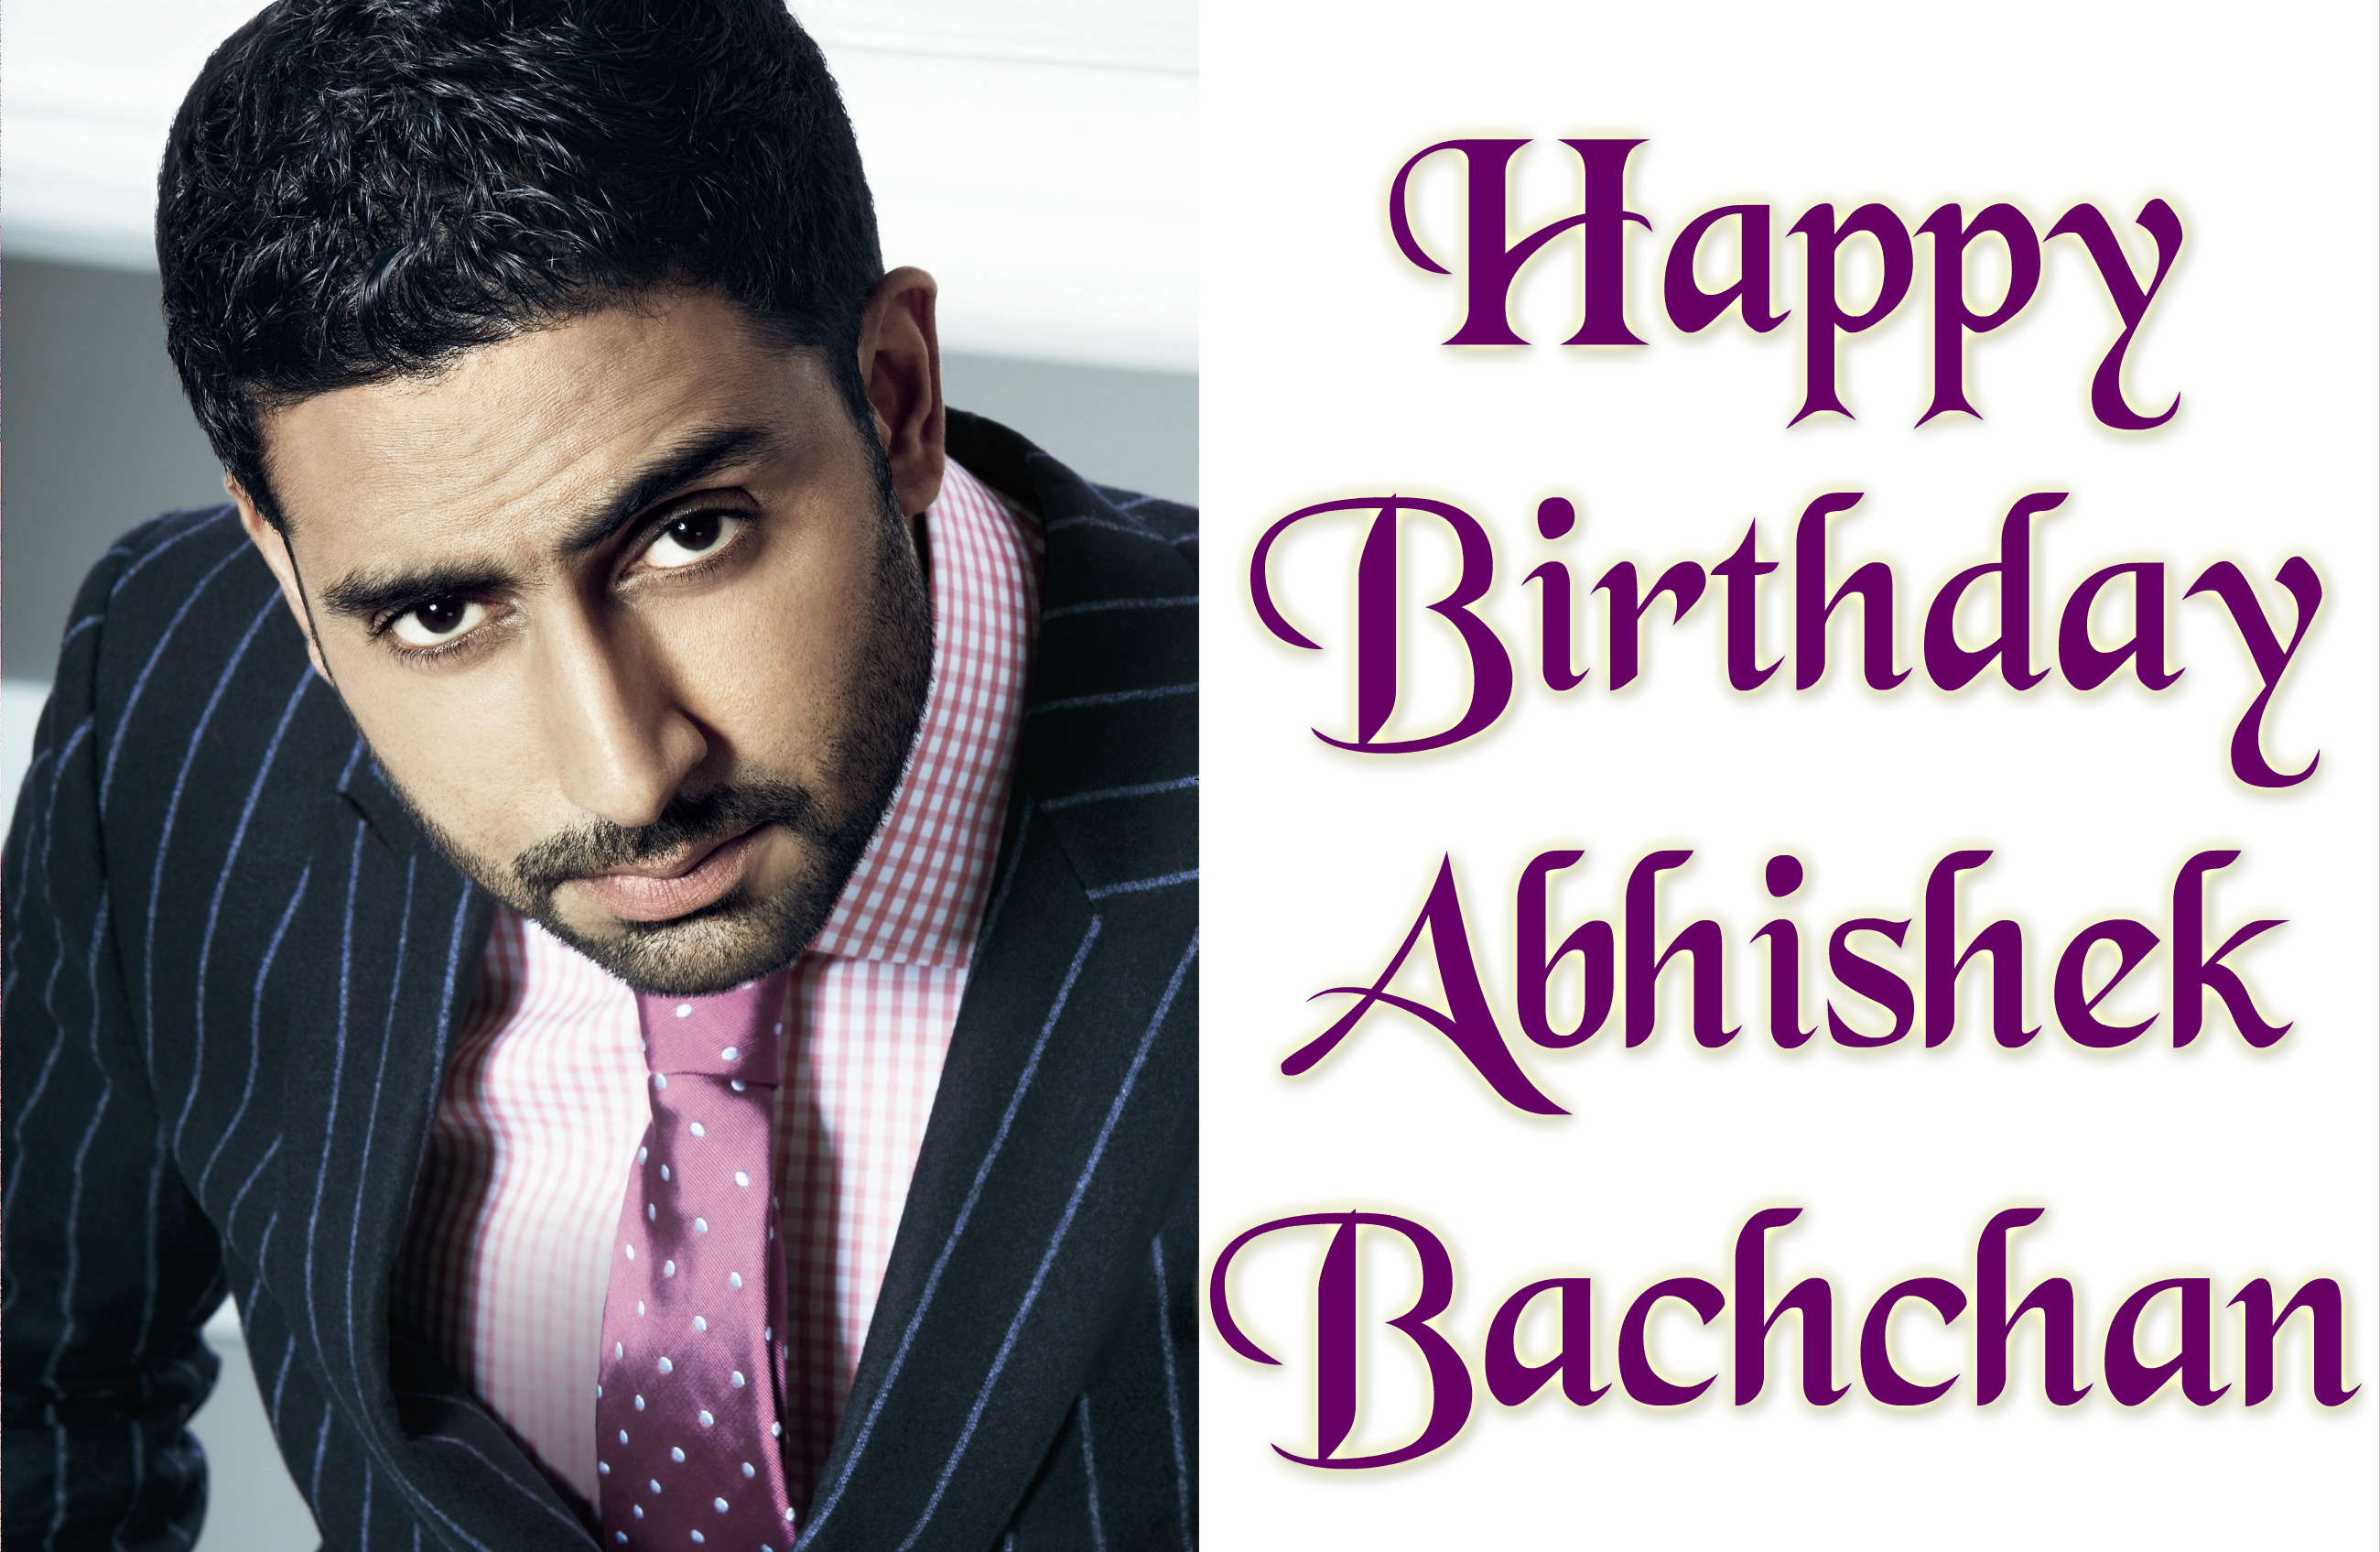 Birthday Special: Out of the box characters played by Abhishek Bachchan that we absolutely loved